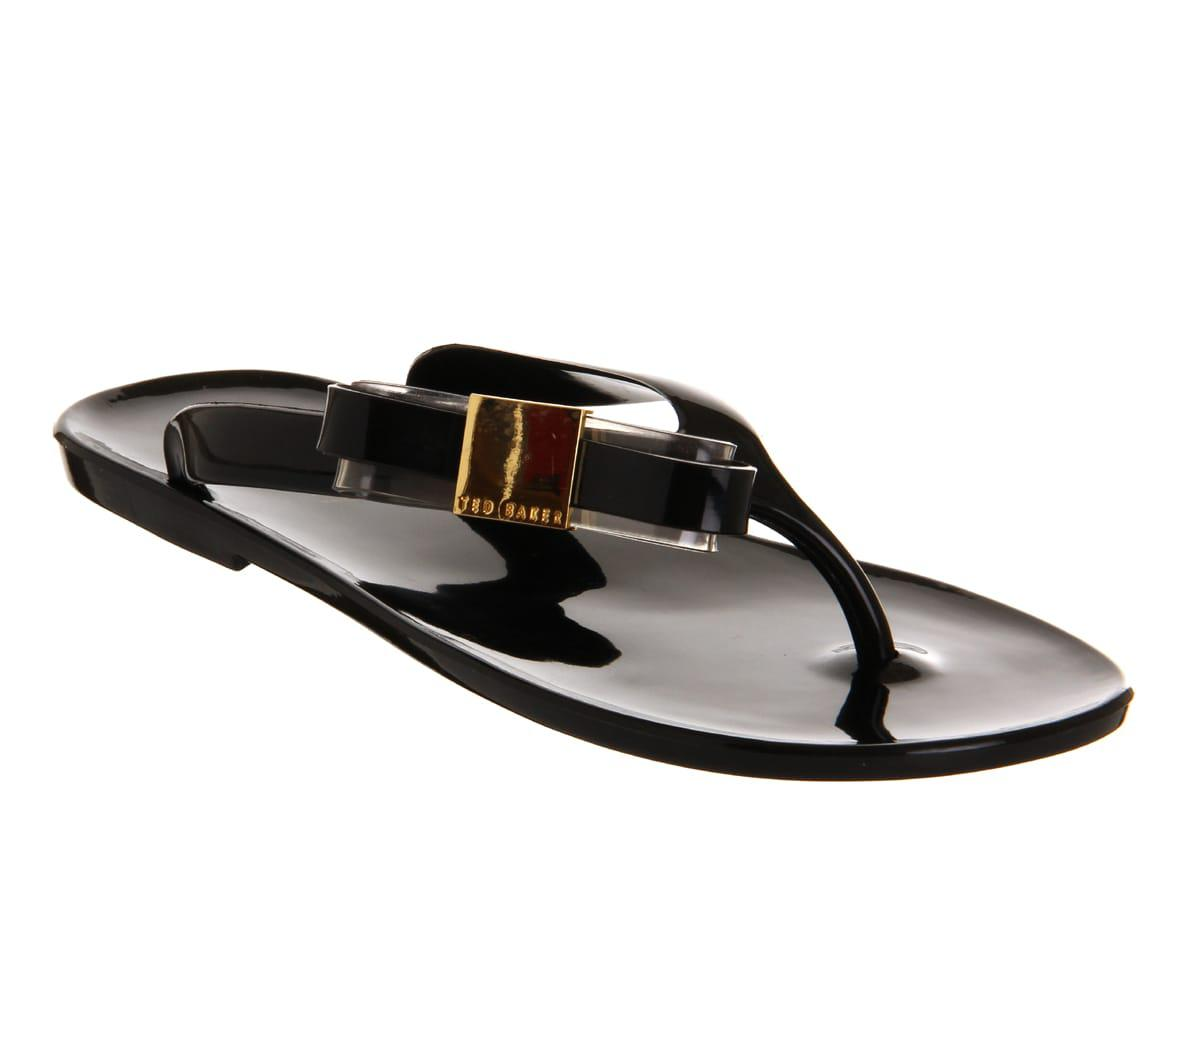 4383c2f42403 Lyst - Ted Baker Hatha Jelly Flip Flop in Black